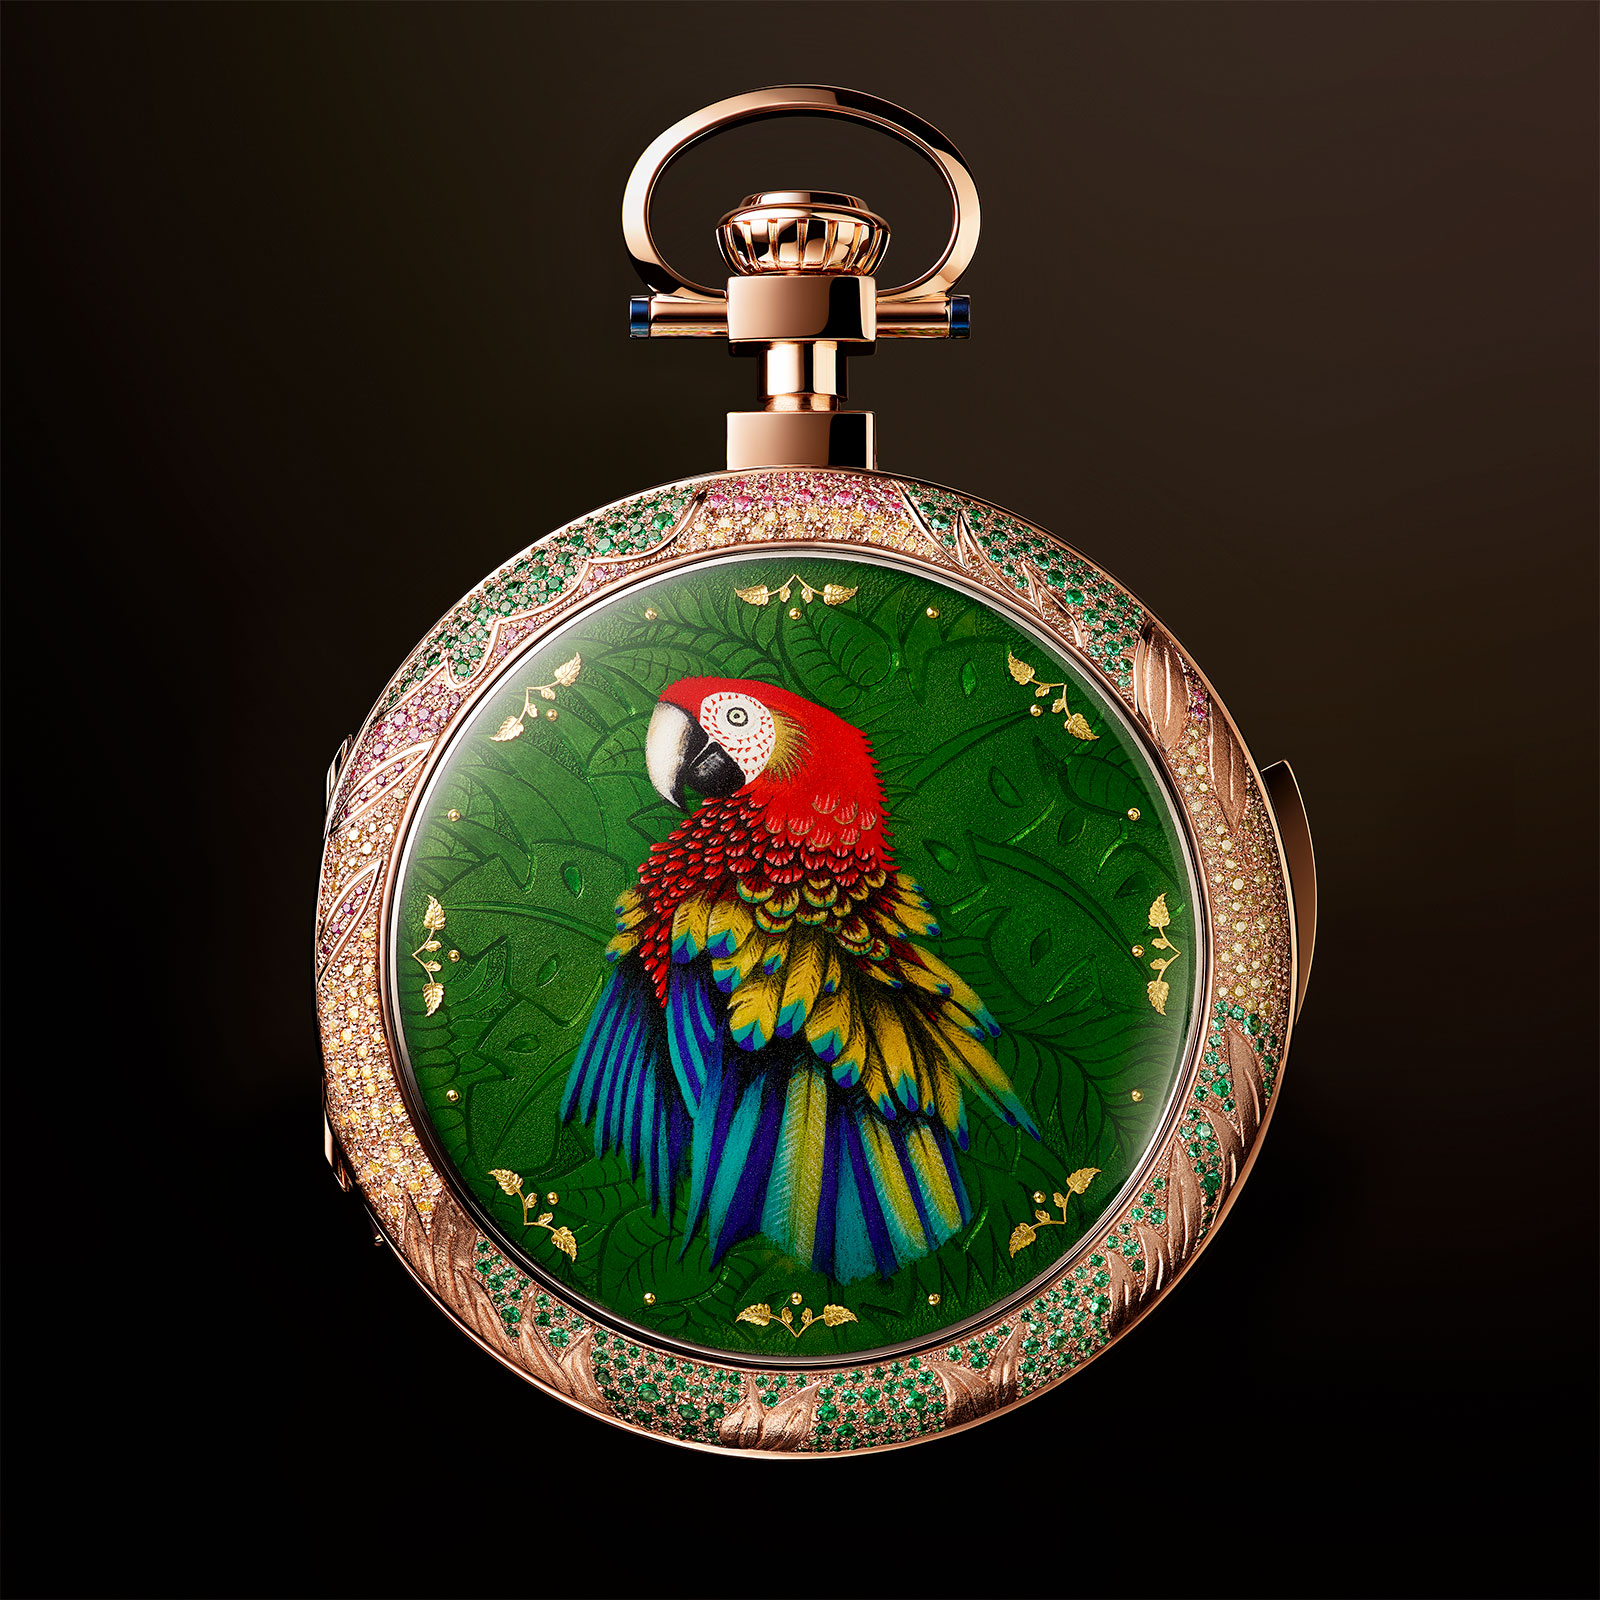 Jaquet Droz Parrot Repeater Pocket Watch 2